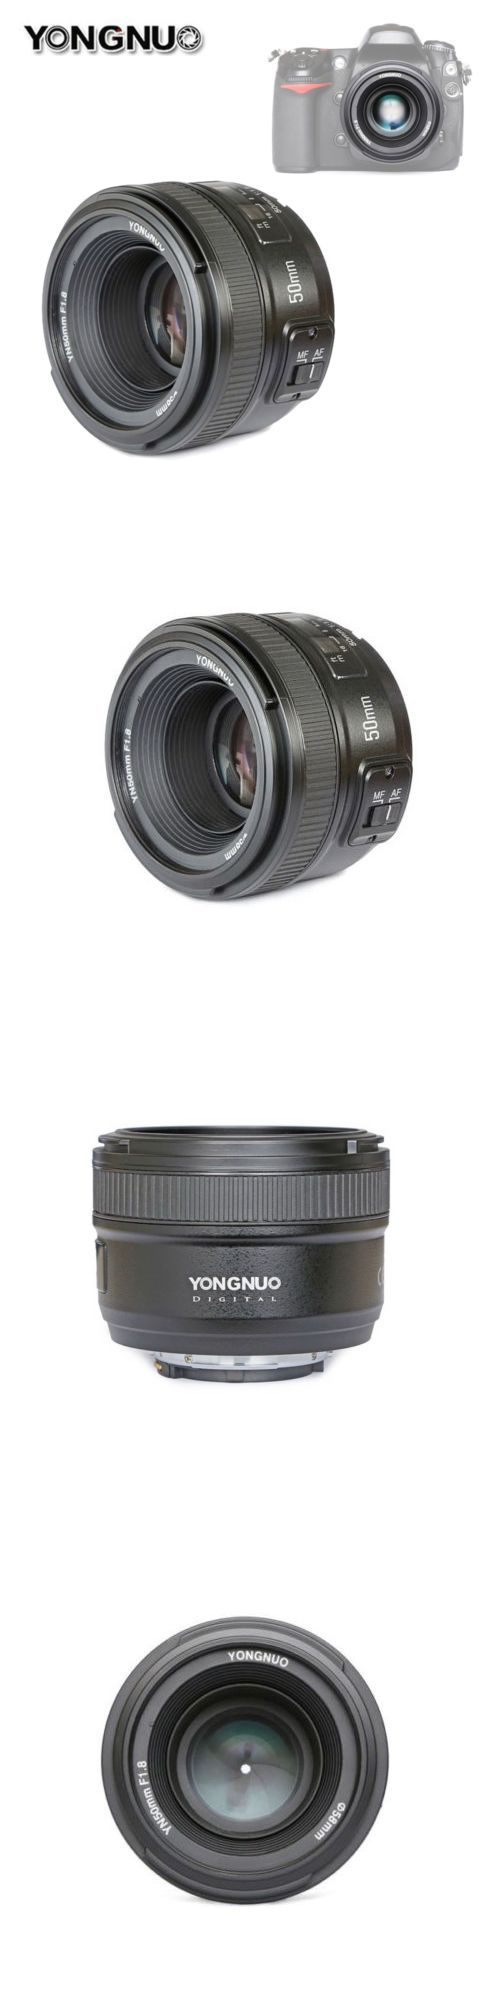 Camera Photo: Yongnuo Yn50mm F 1.8 Large Aperture Mf Af Auto Focus Prime Lens For Nikon Dslr -> BUY IT NOW ONLY: $69.5 on eBay!